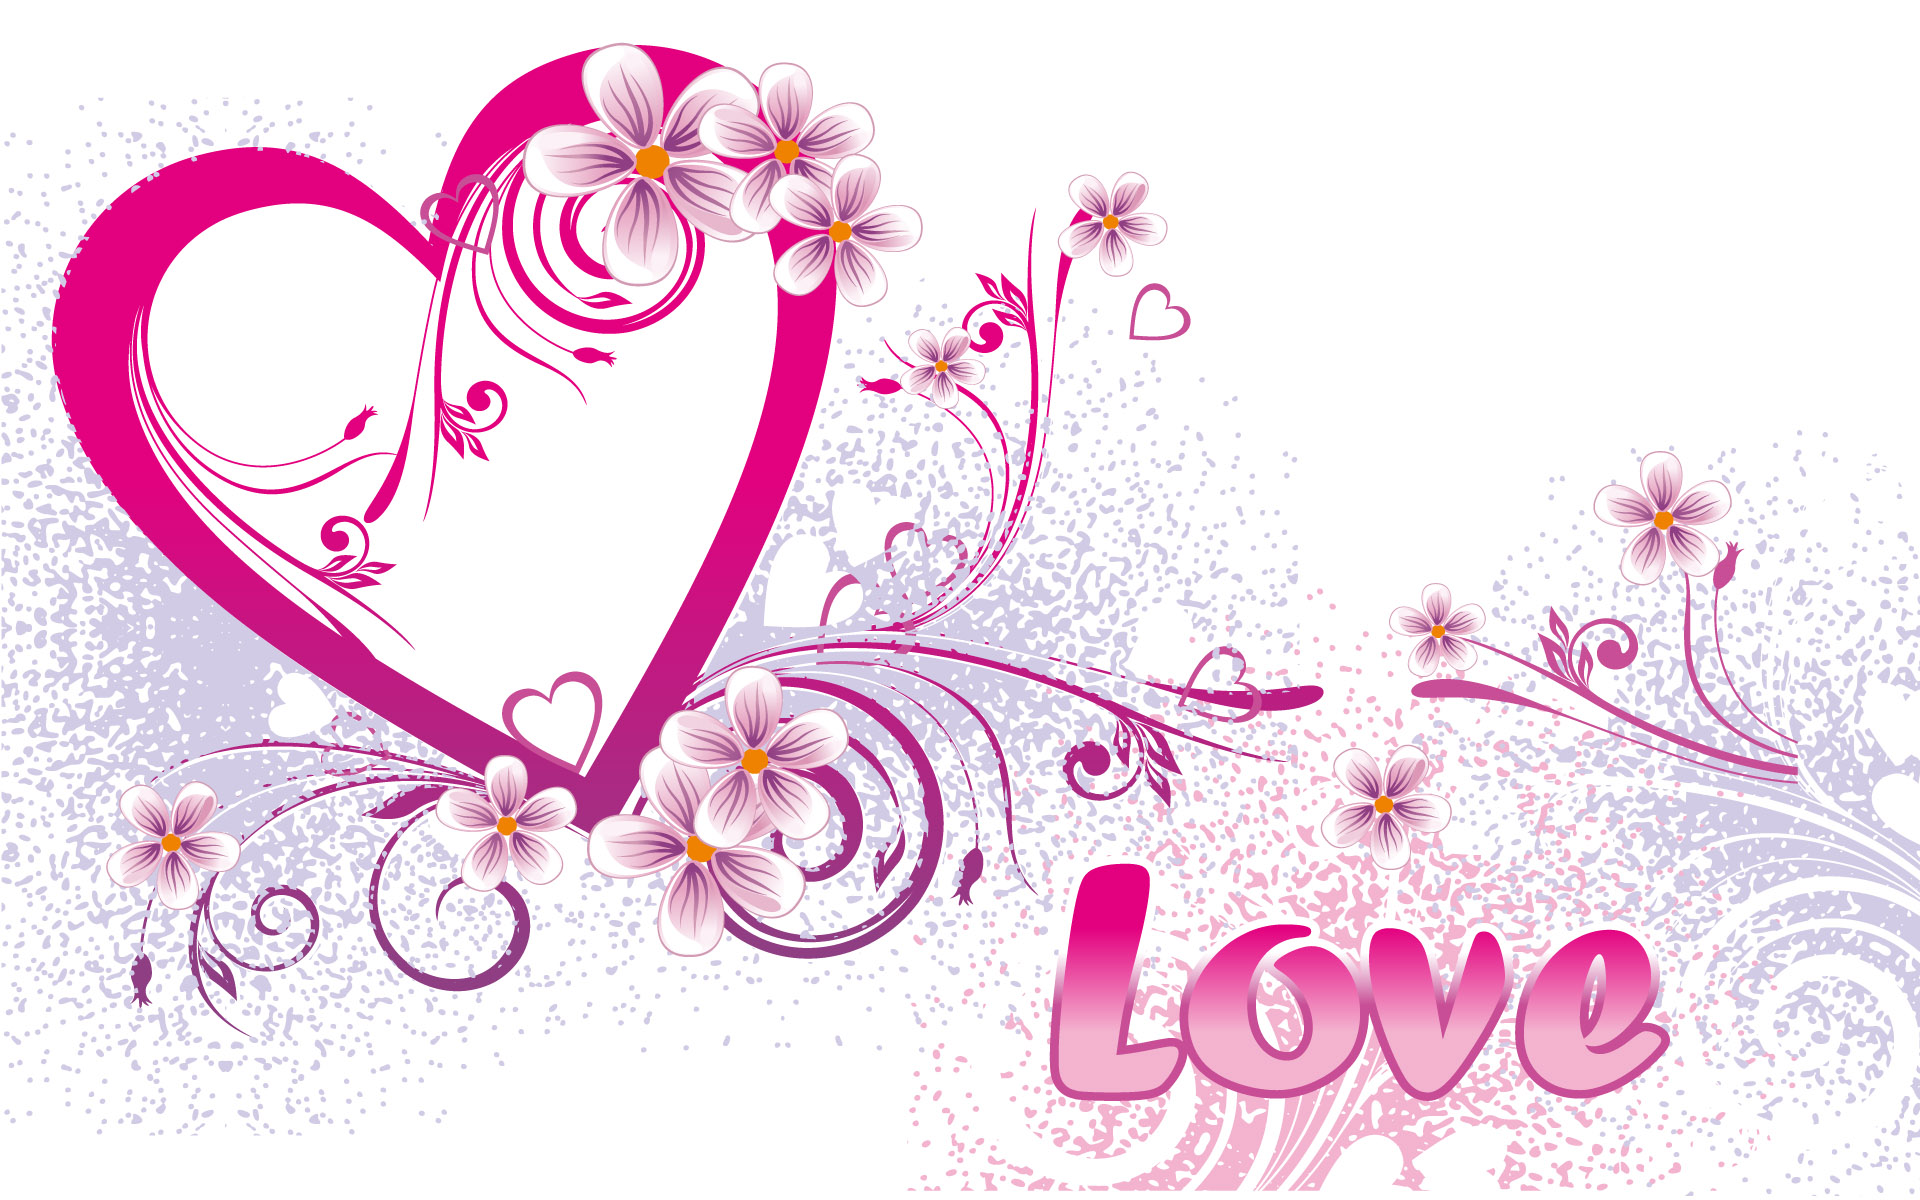 valentines day greetings wallpaper free hd desktop